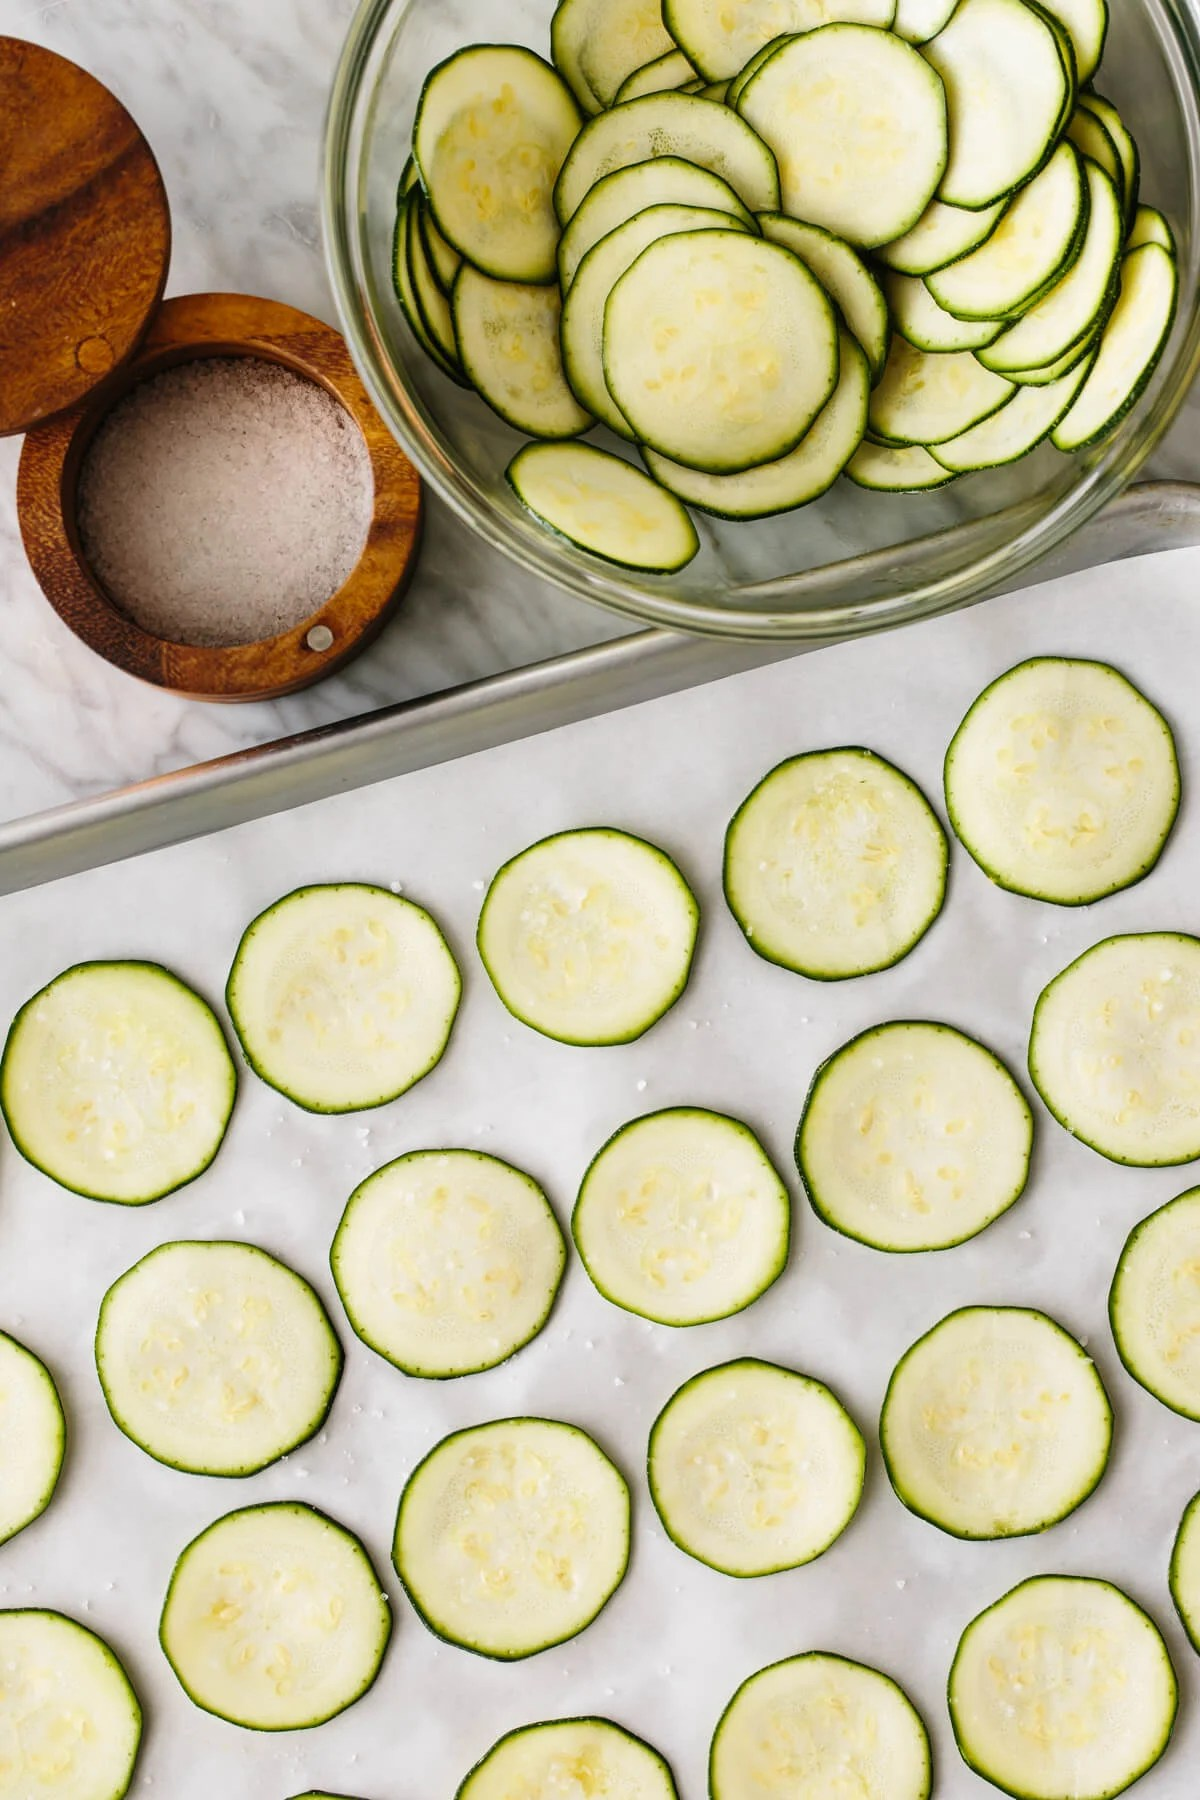 Fresh zucchini slices evenly laid out on a baking tray next to a wooden container with salt.